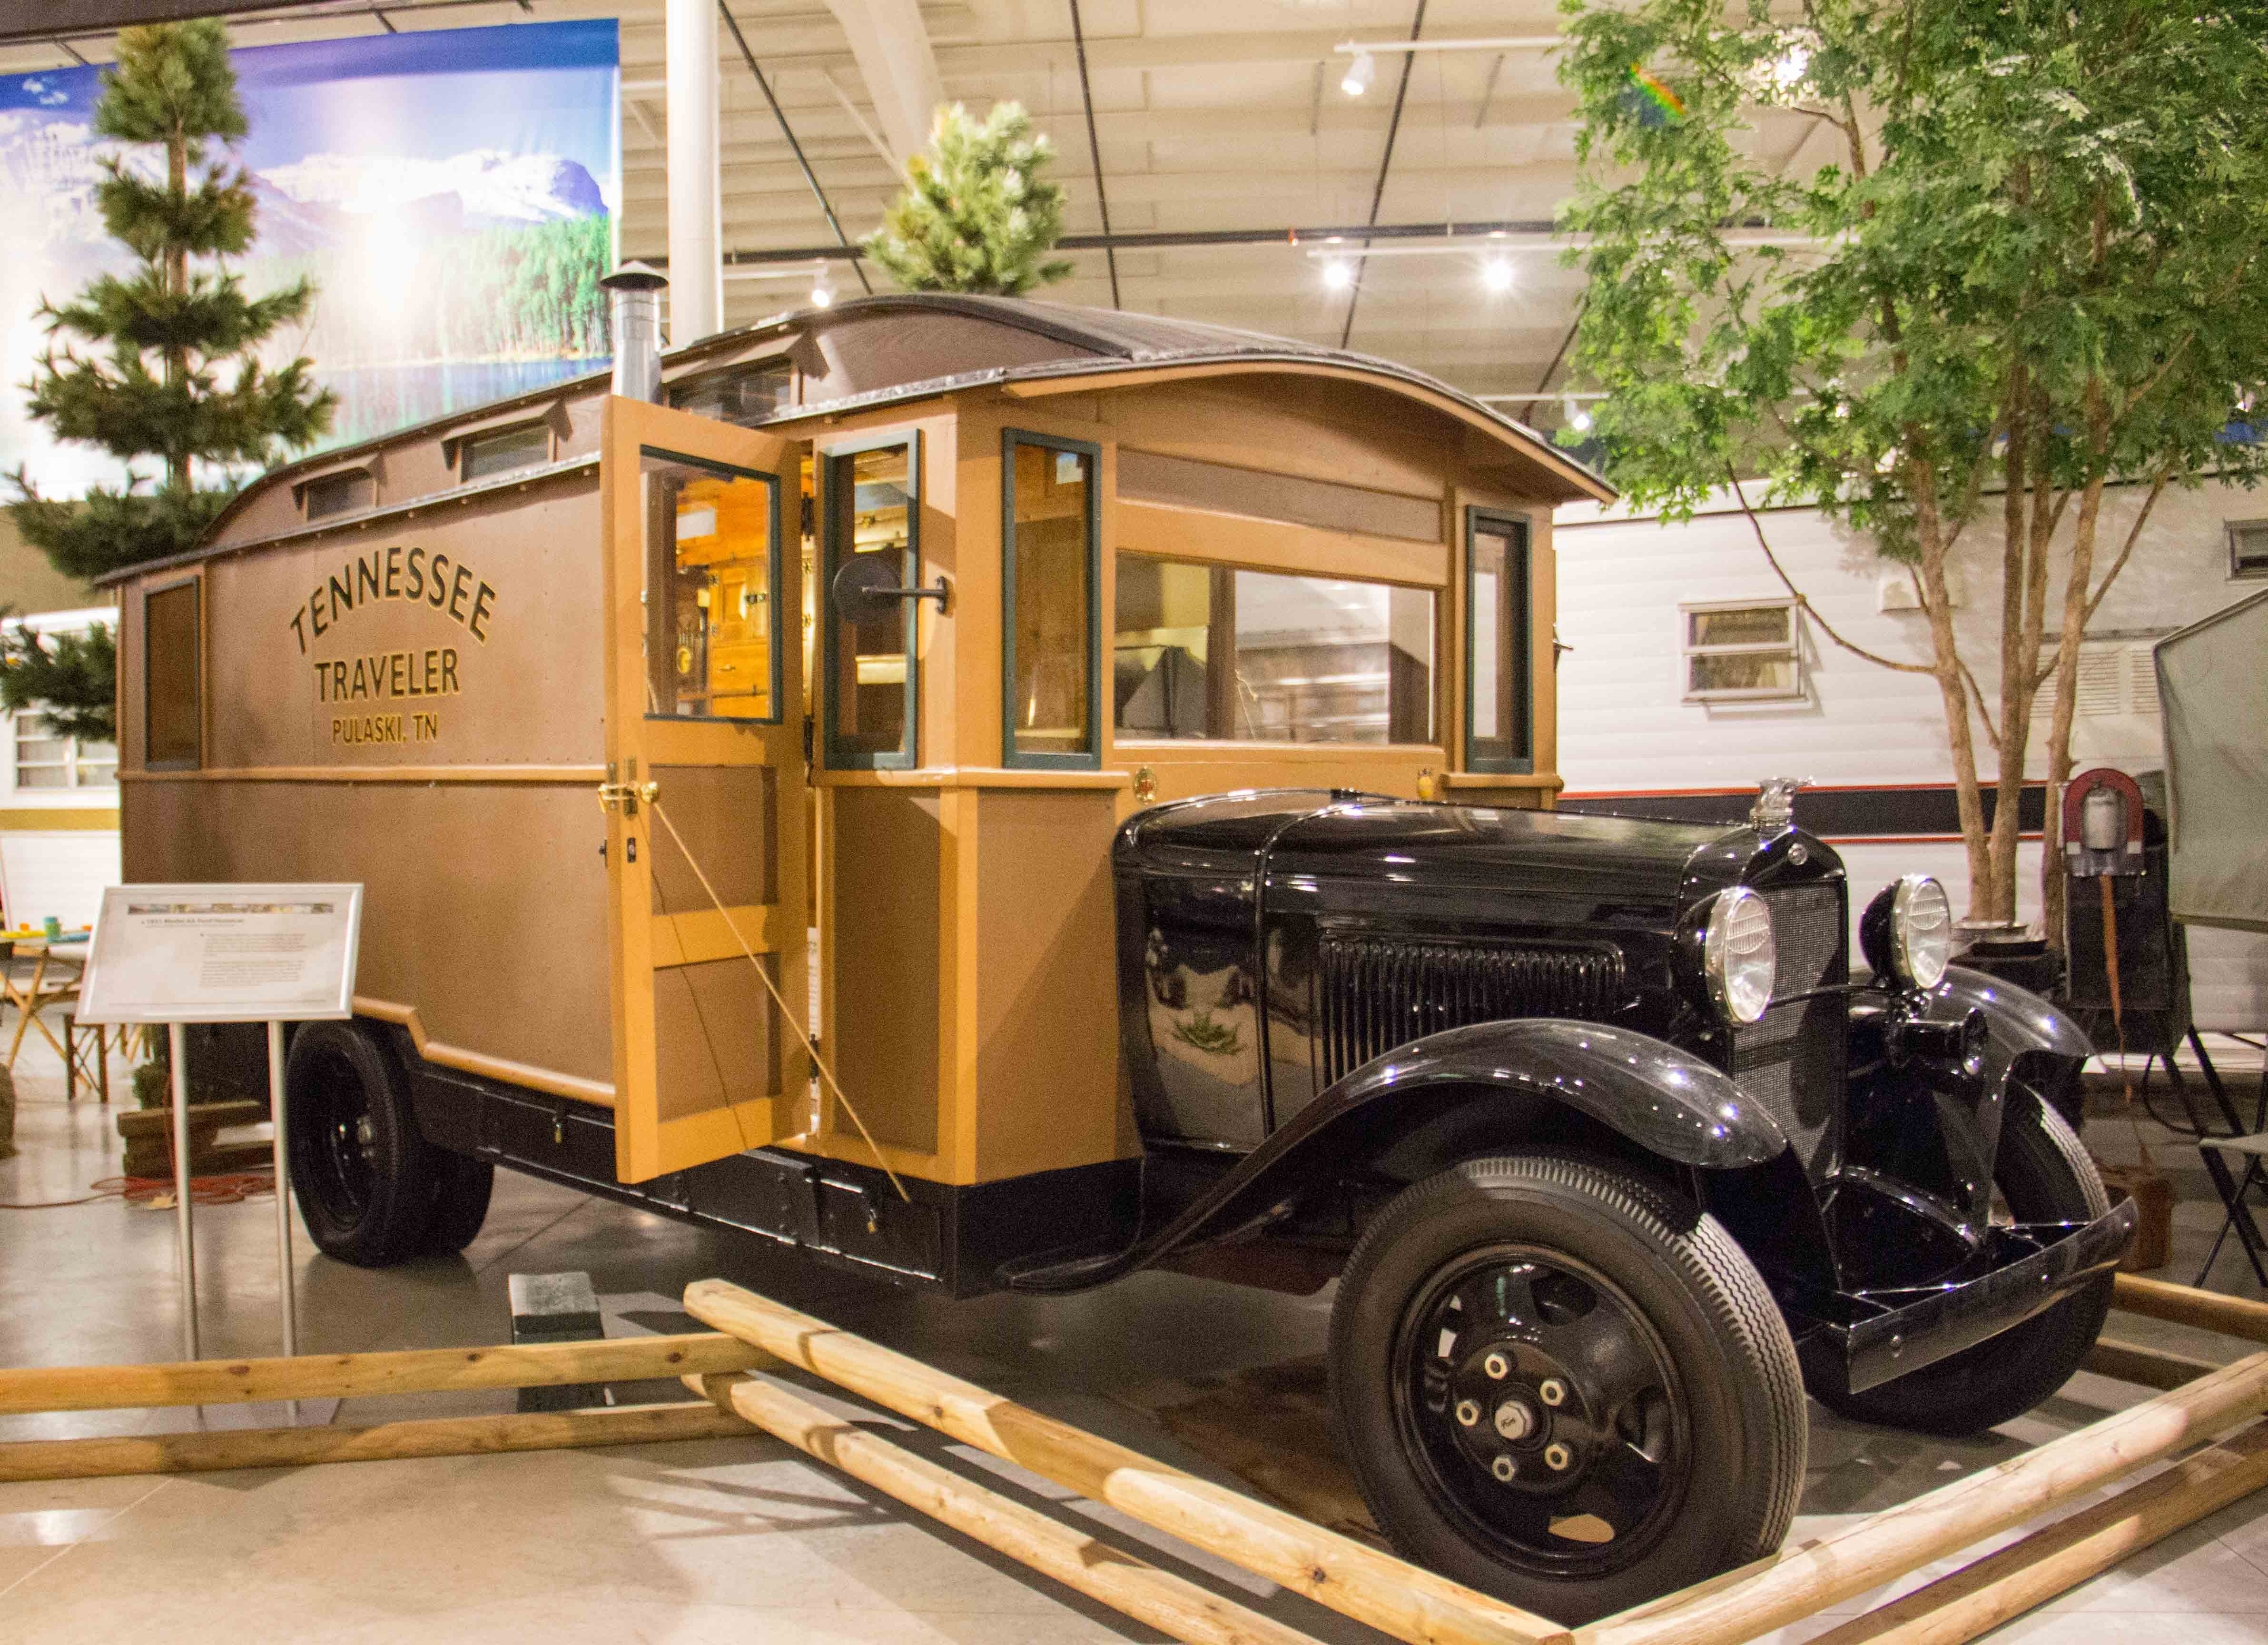 Rv Mh Hall Of Fame Exhibits Campers Of Yesteryear Midwest Wanderer